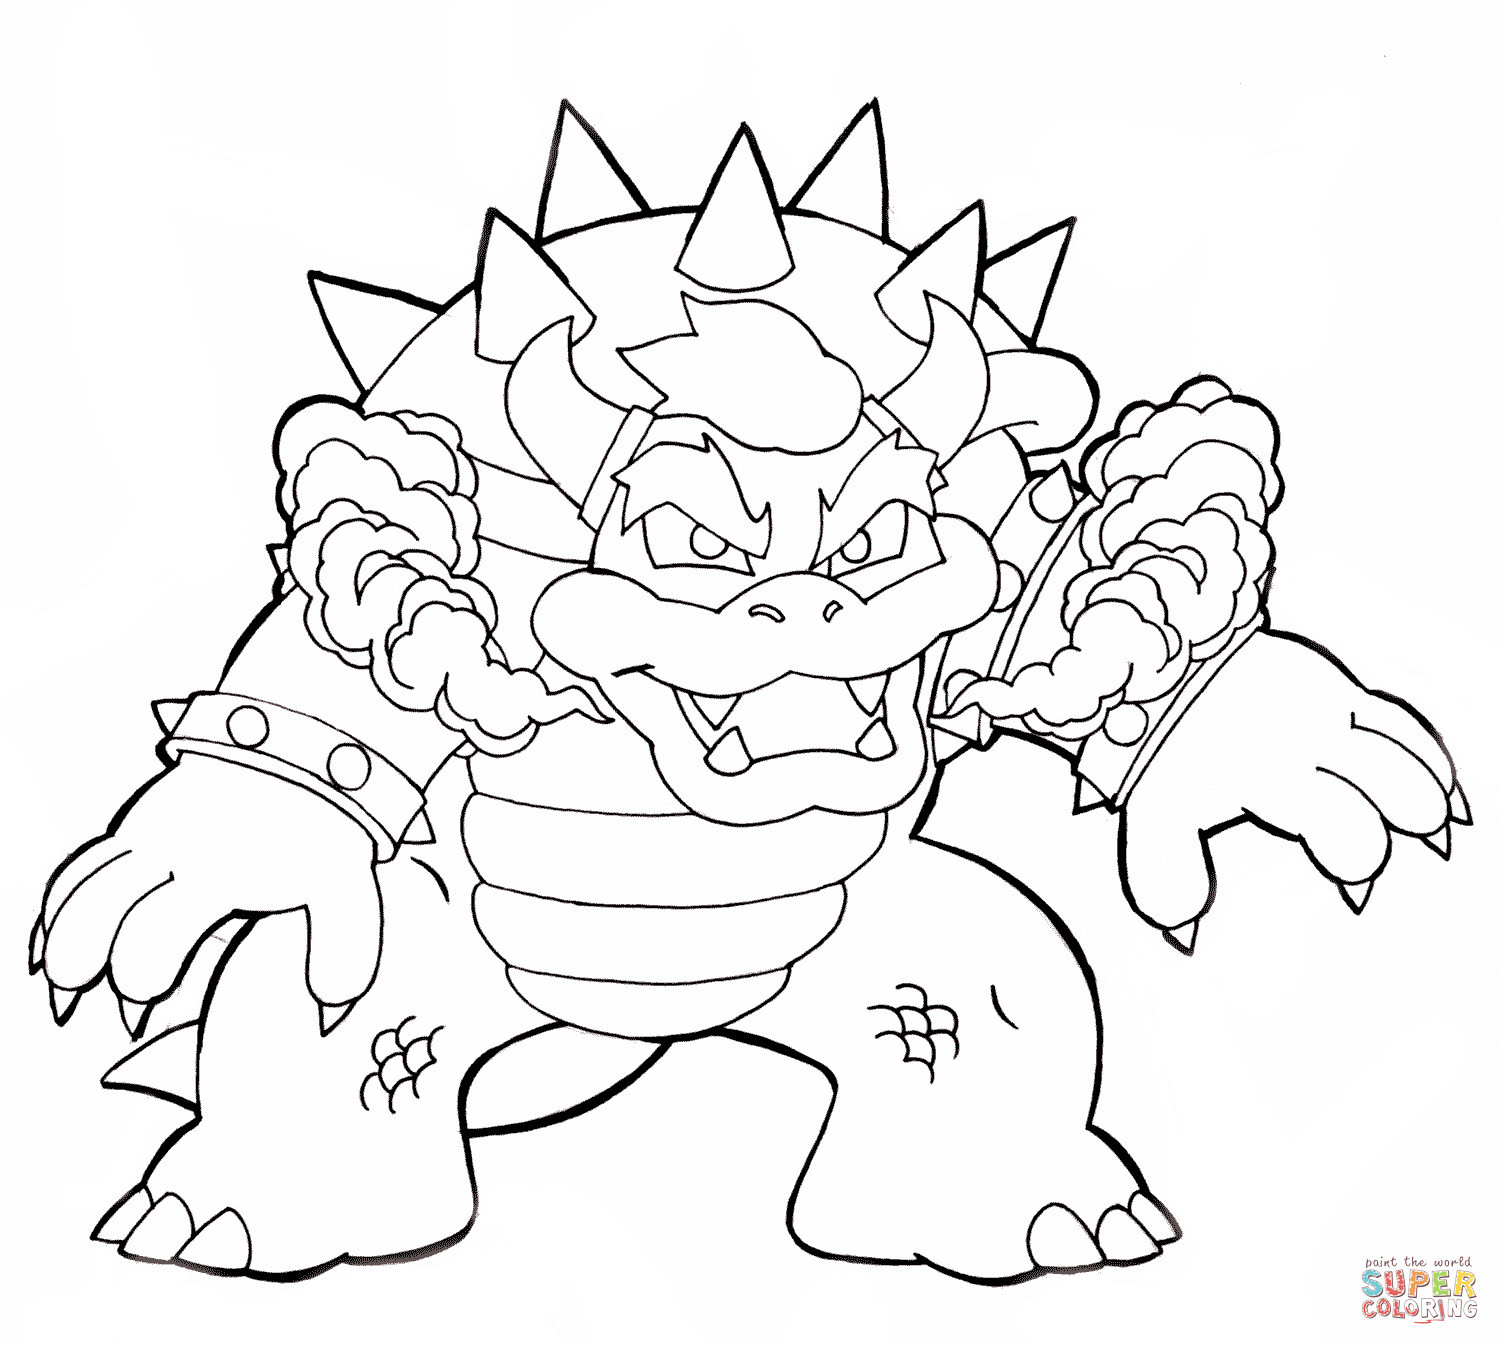 Super Mario Ausmalbilder Das Beste Von Mario Bros Bowser Coloring Pages by Sharon Mario Party Schön Super Fotografieren